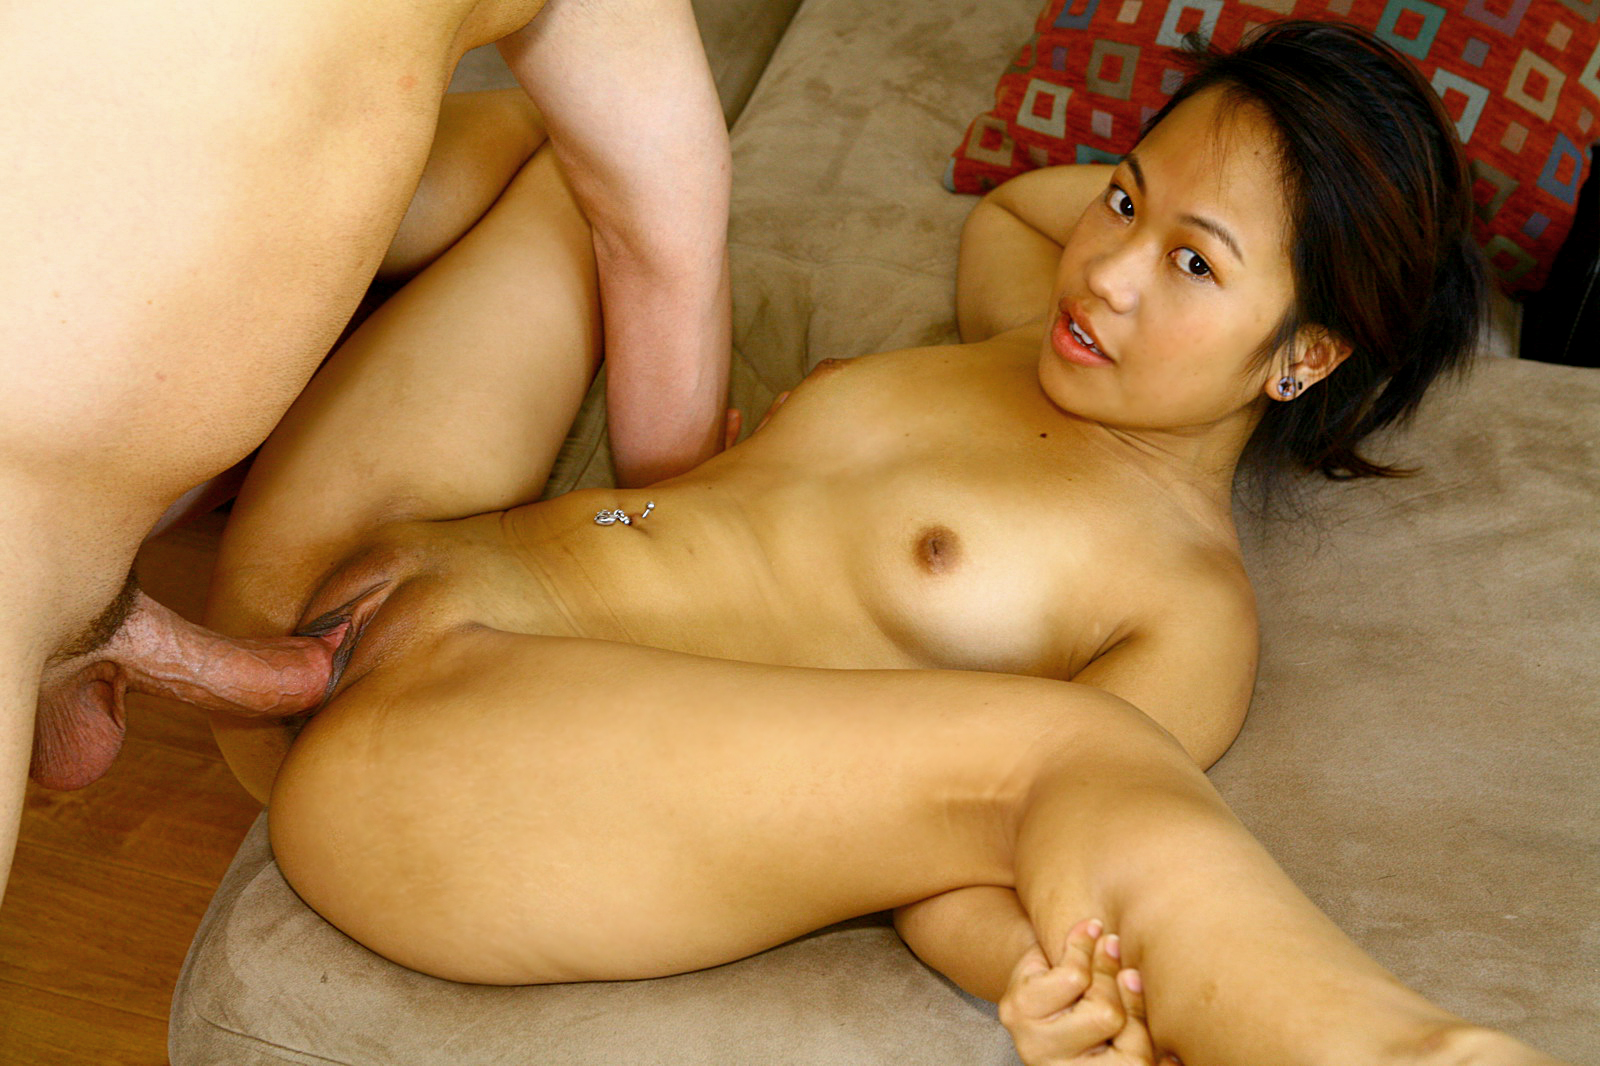 Chinese women being fucked